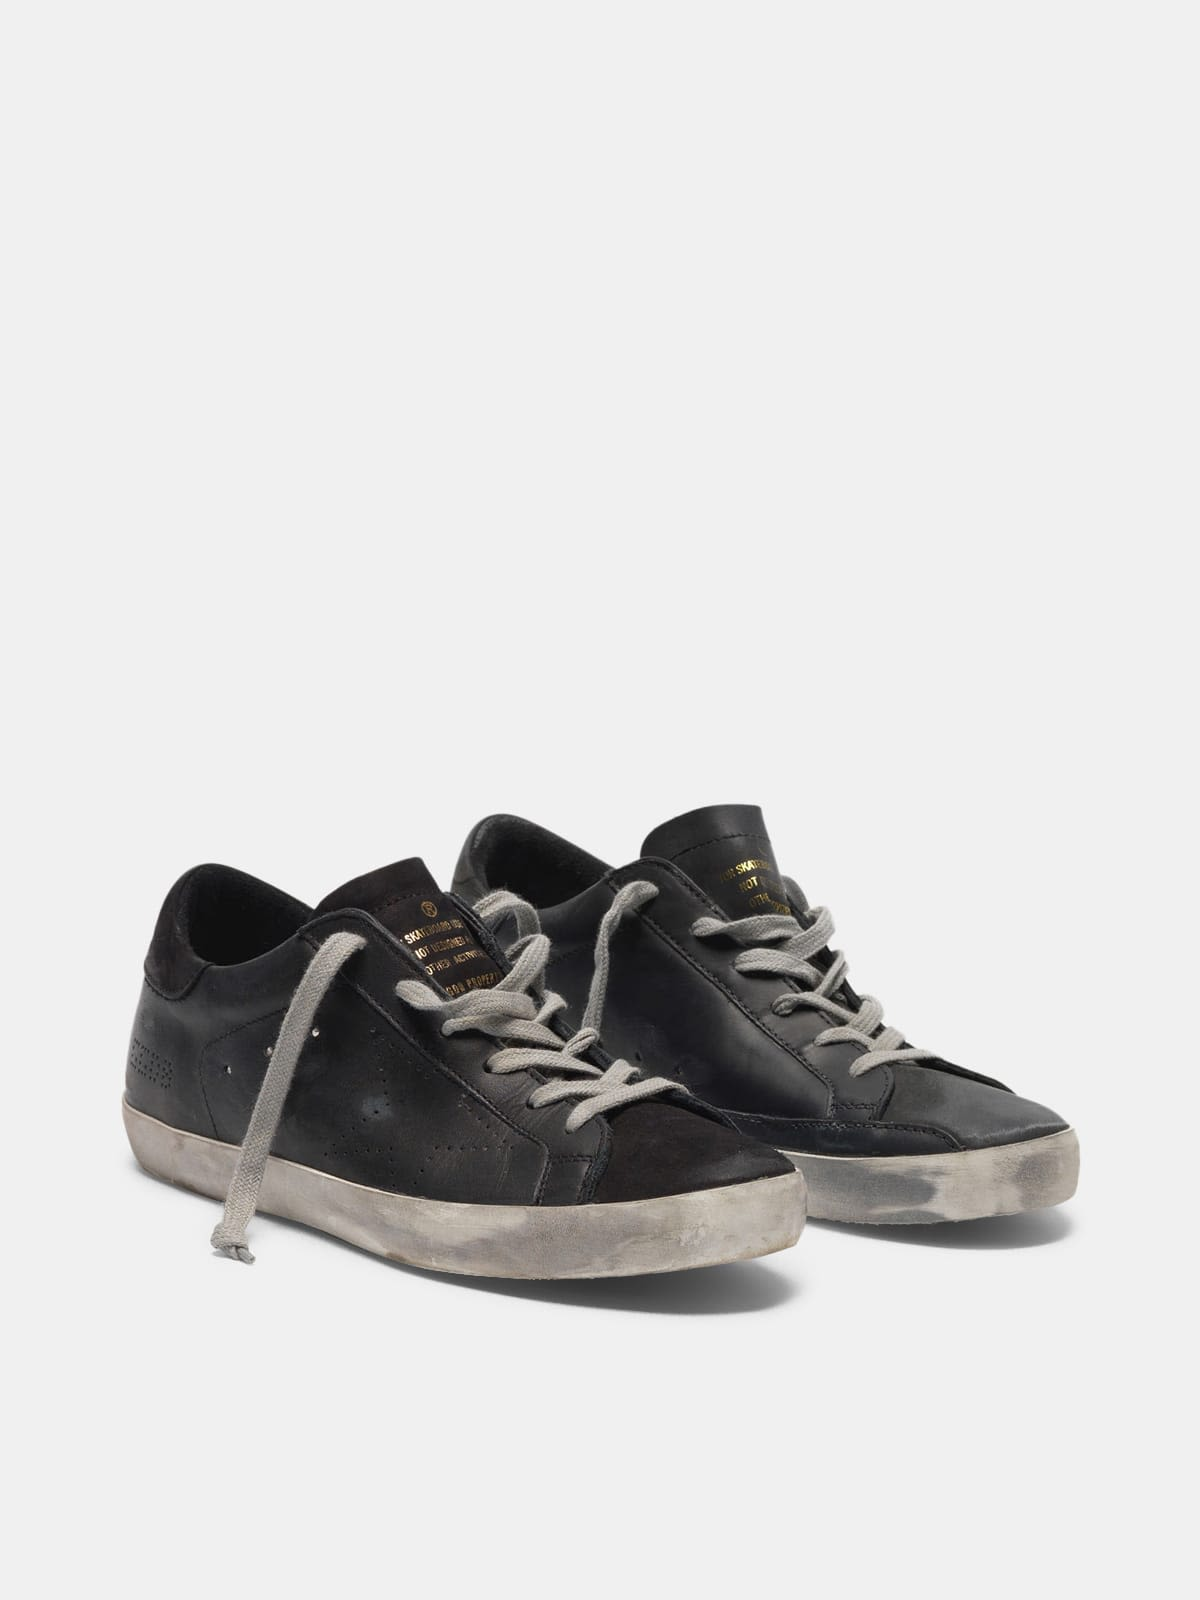 Super-Star sneakers in leather with perforated star